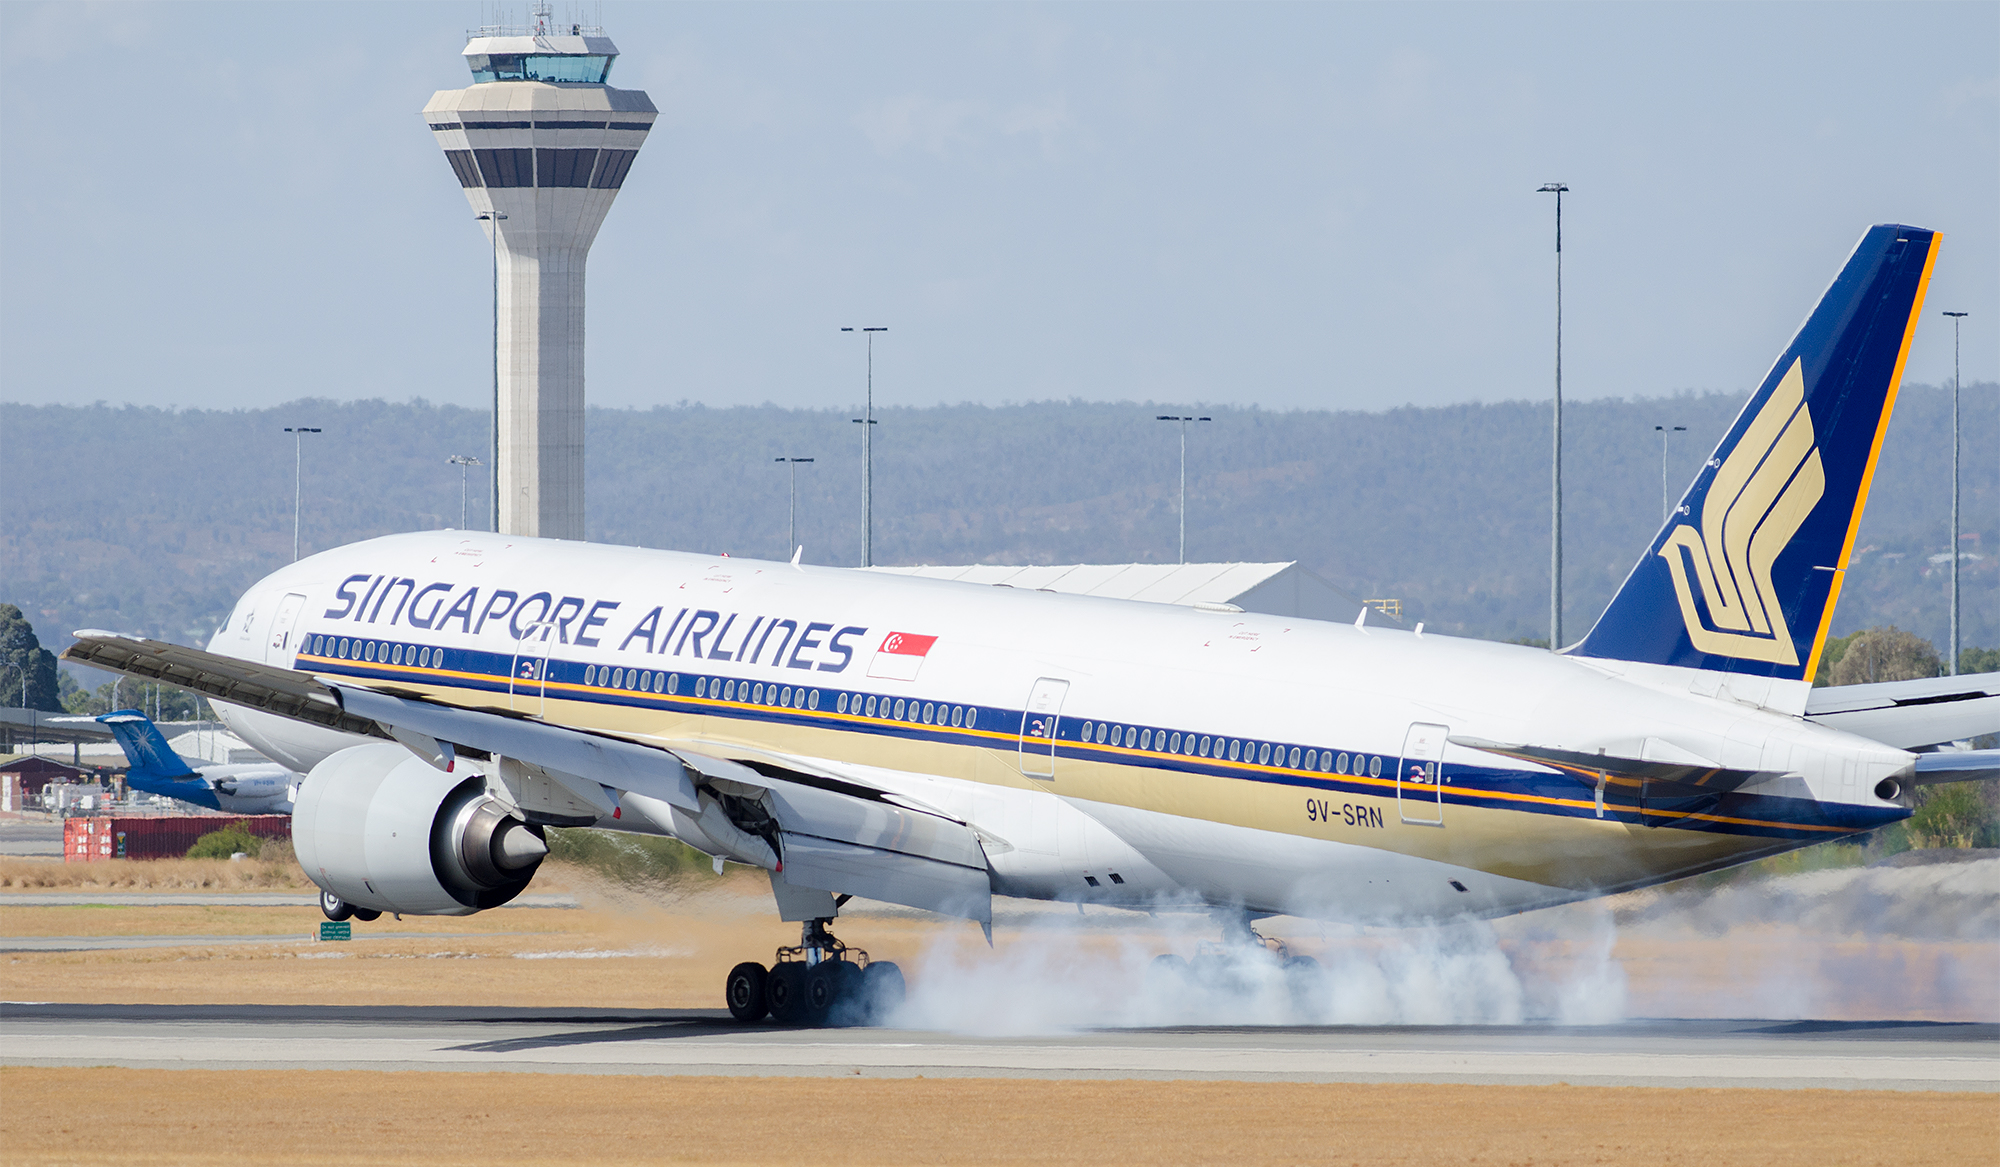 Where there's smoke, there's a 777 grabbing onto the earth with all 12 tires...